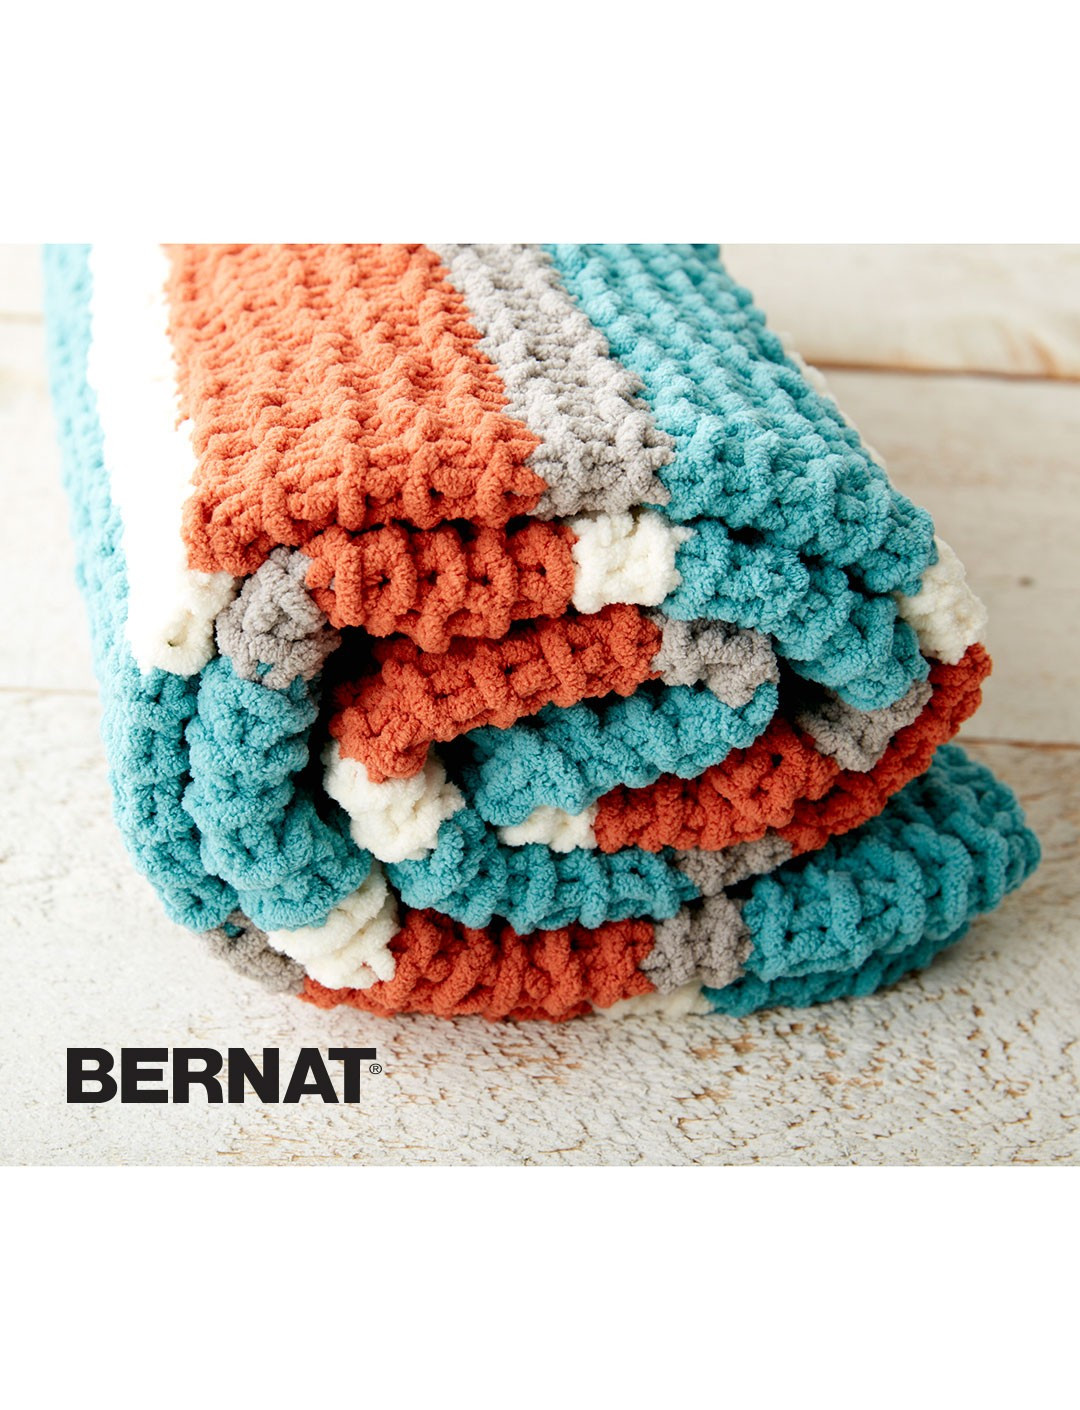 Bernat Blanket Yarn Patterns Inspirational Bernat Get Fresh Throw Knit Pattern Of New 42 Photos Bernat Blanket Yarn Patterns